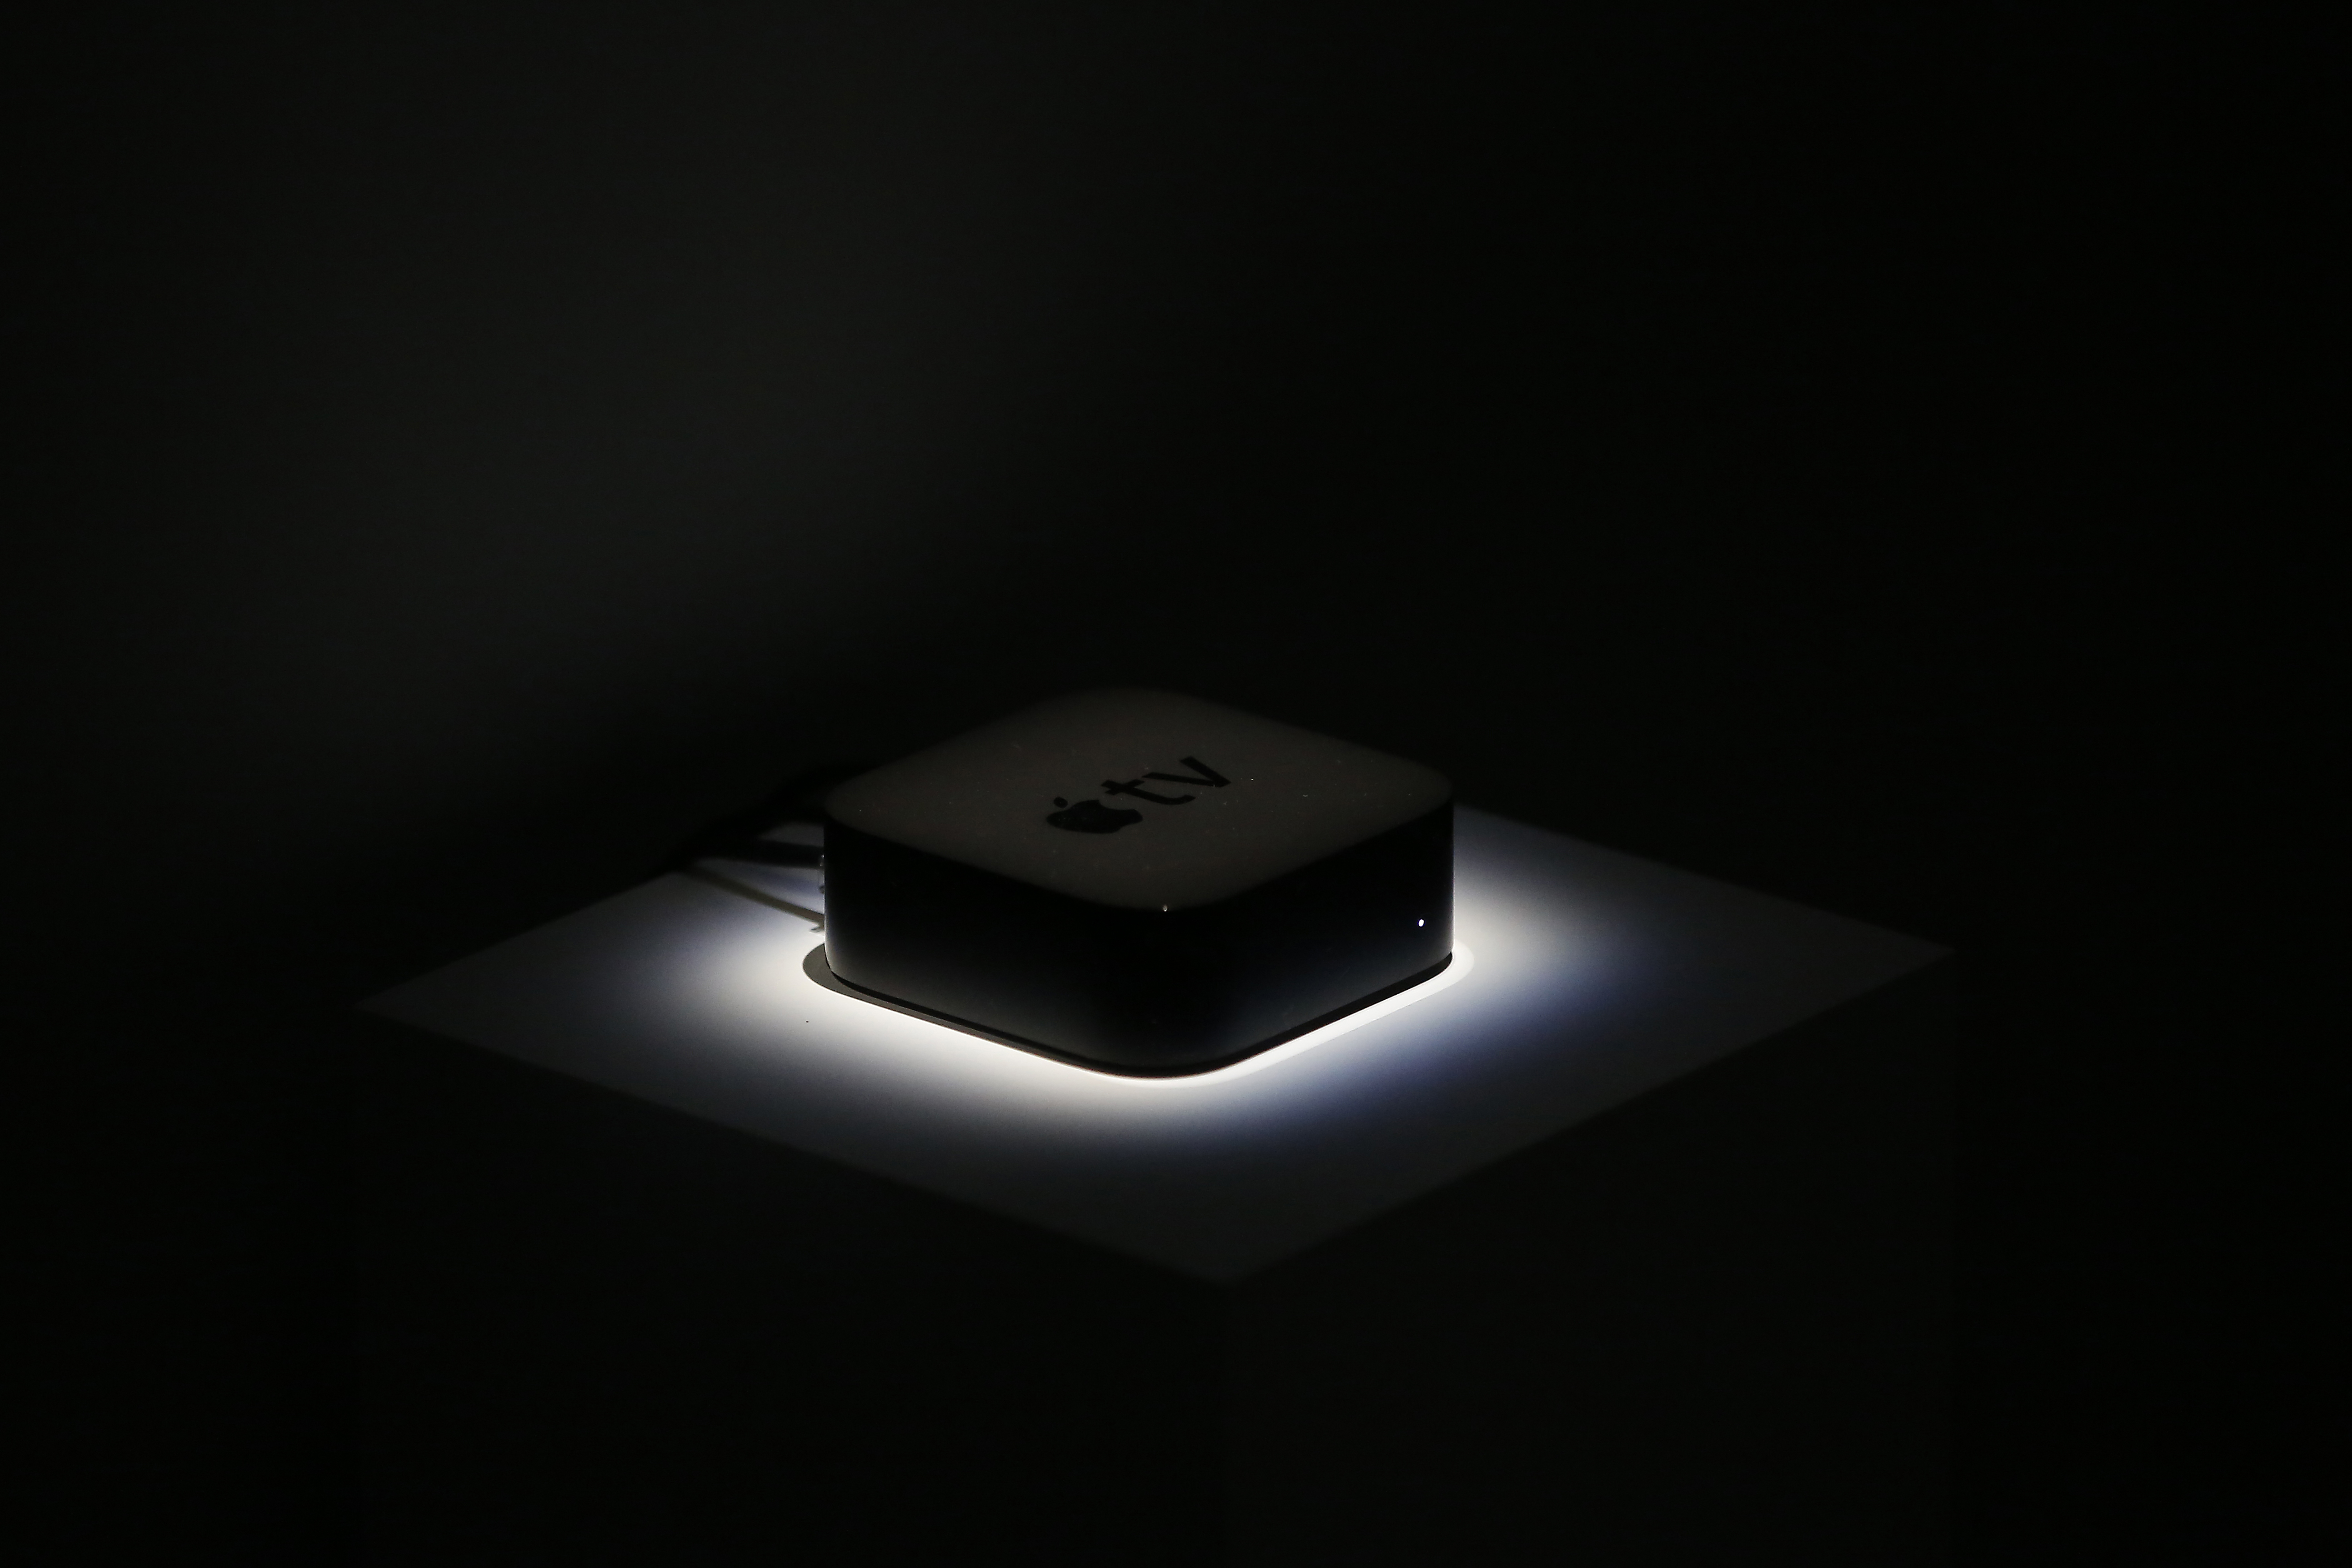 An Apple Tv set-top box is seen in the demo area after an Apple special event at Bill Graham Civic Auditorium on September 9, 2015 in San Francisco, California. Apple Inc. unveiled the latest iterations of its smart phone, the 6S and 6S Plus, an update to its Apple TV set-top box as well as announcing the new iPad Pro. (Photo by Stephen Lam/ Getty Images)